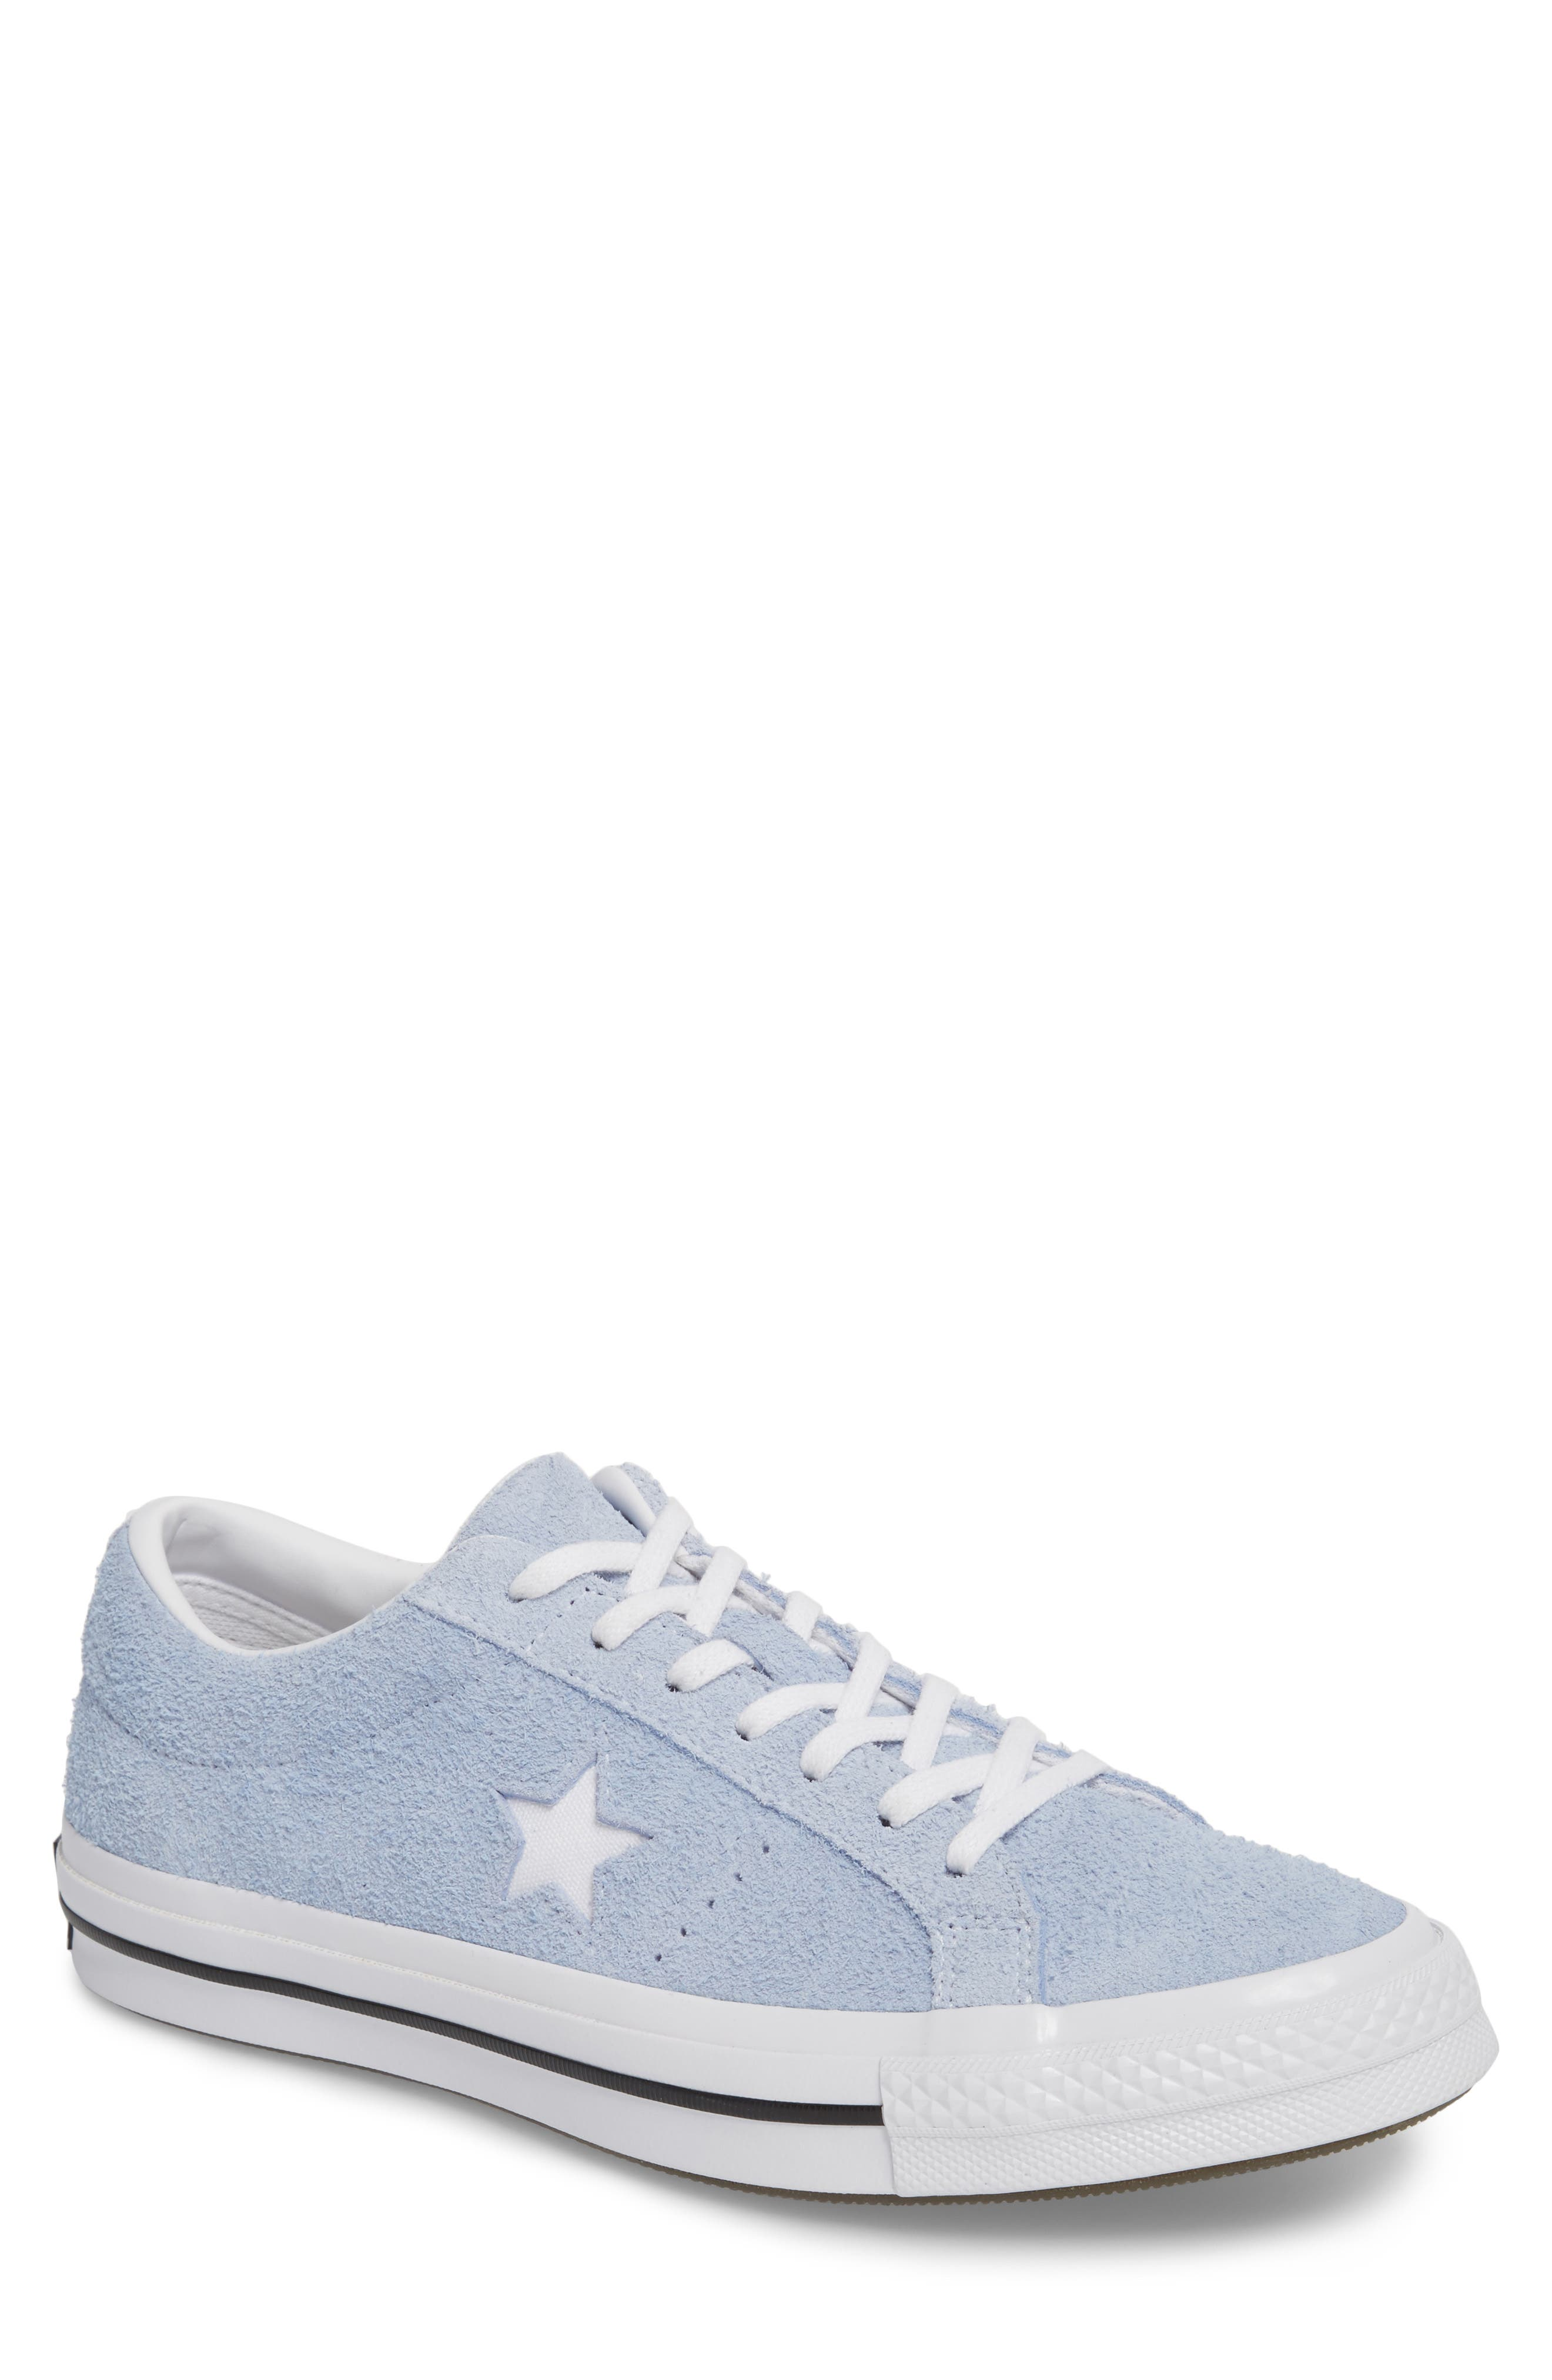 One Star Sneaker,                         Main,                         color, Blue Chill Suede